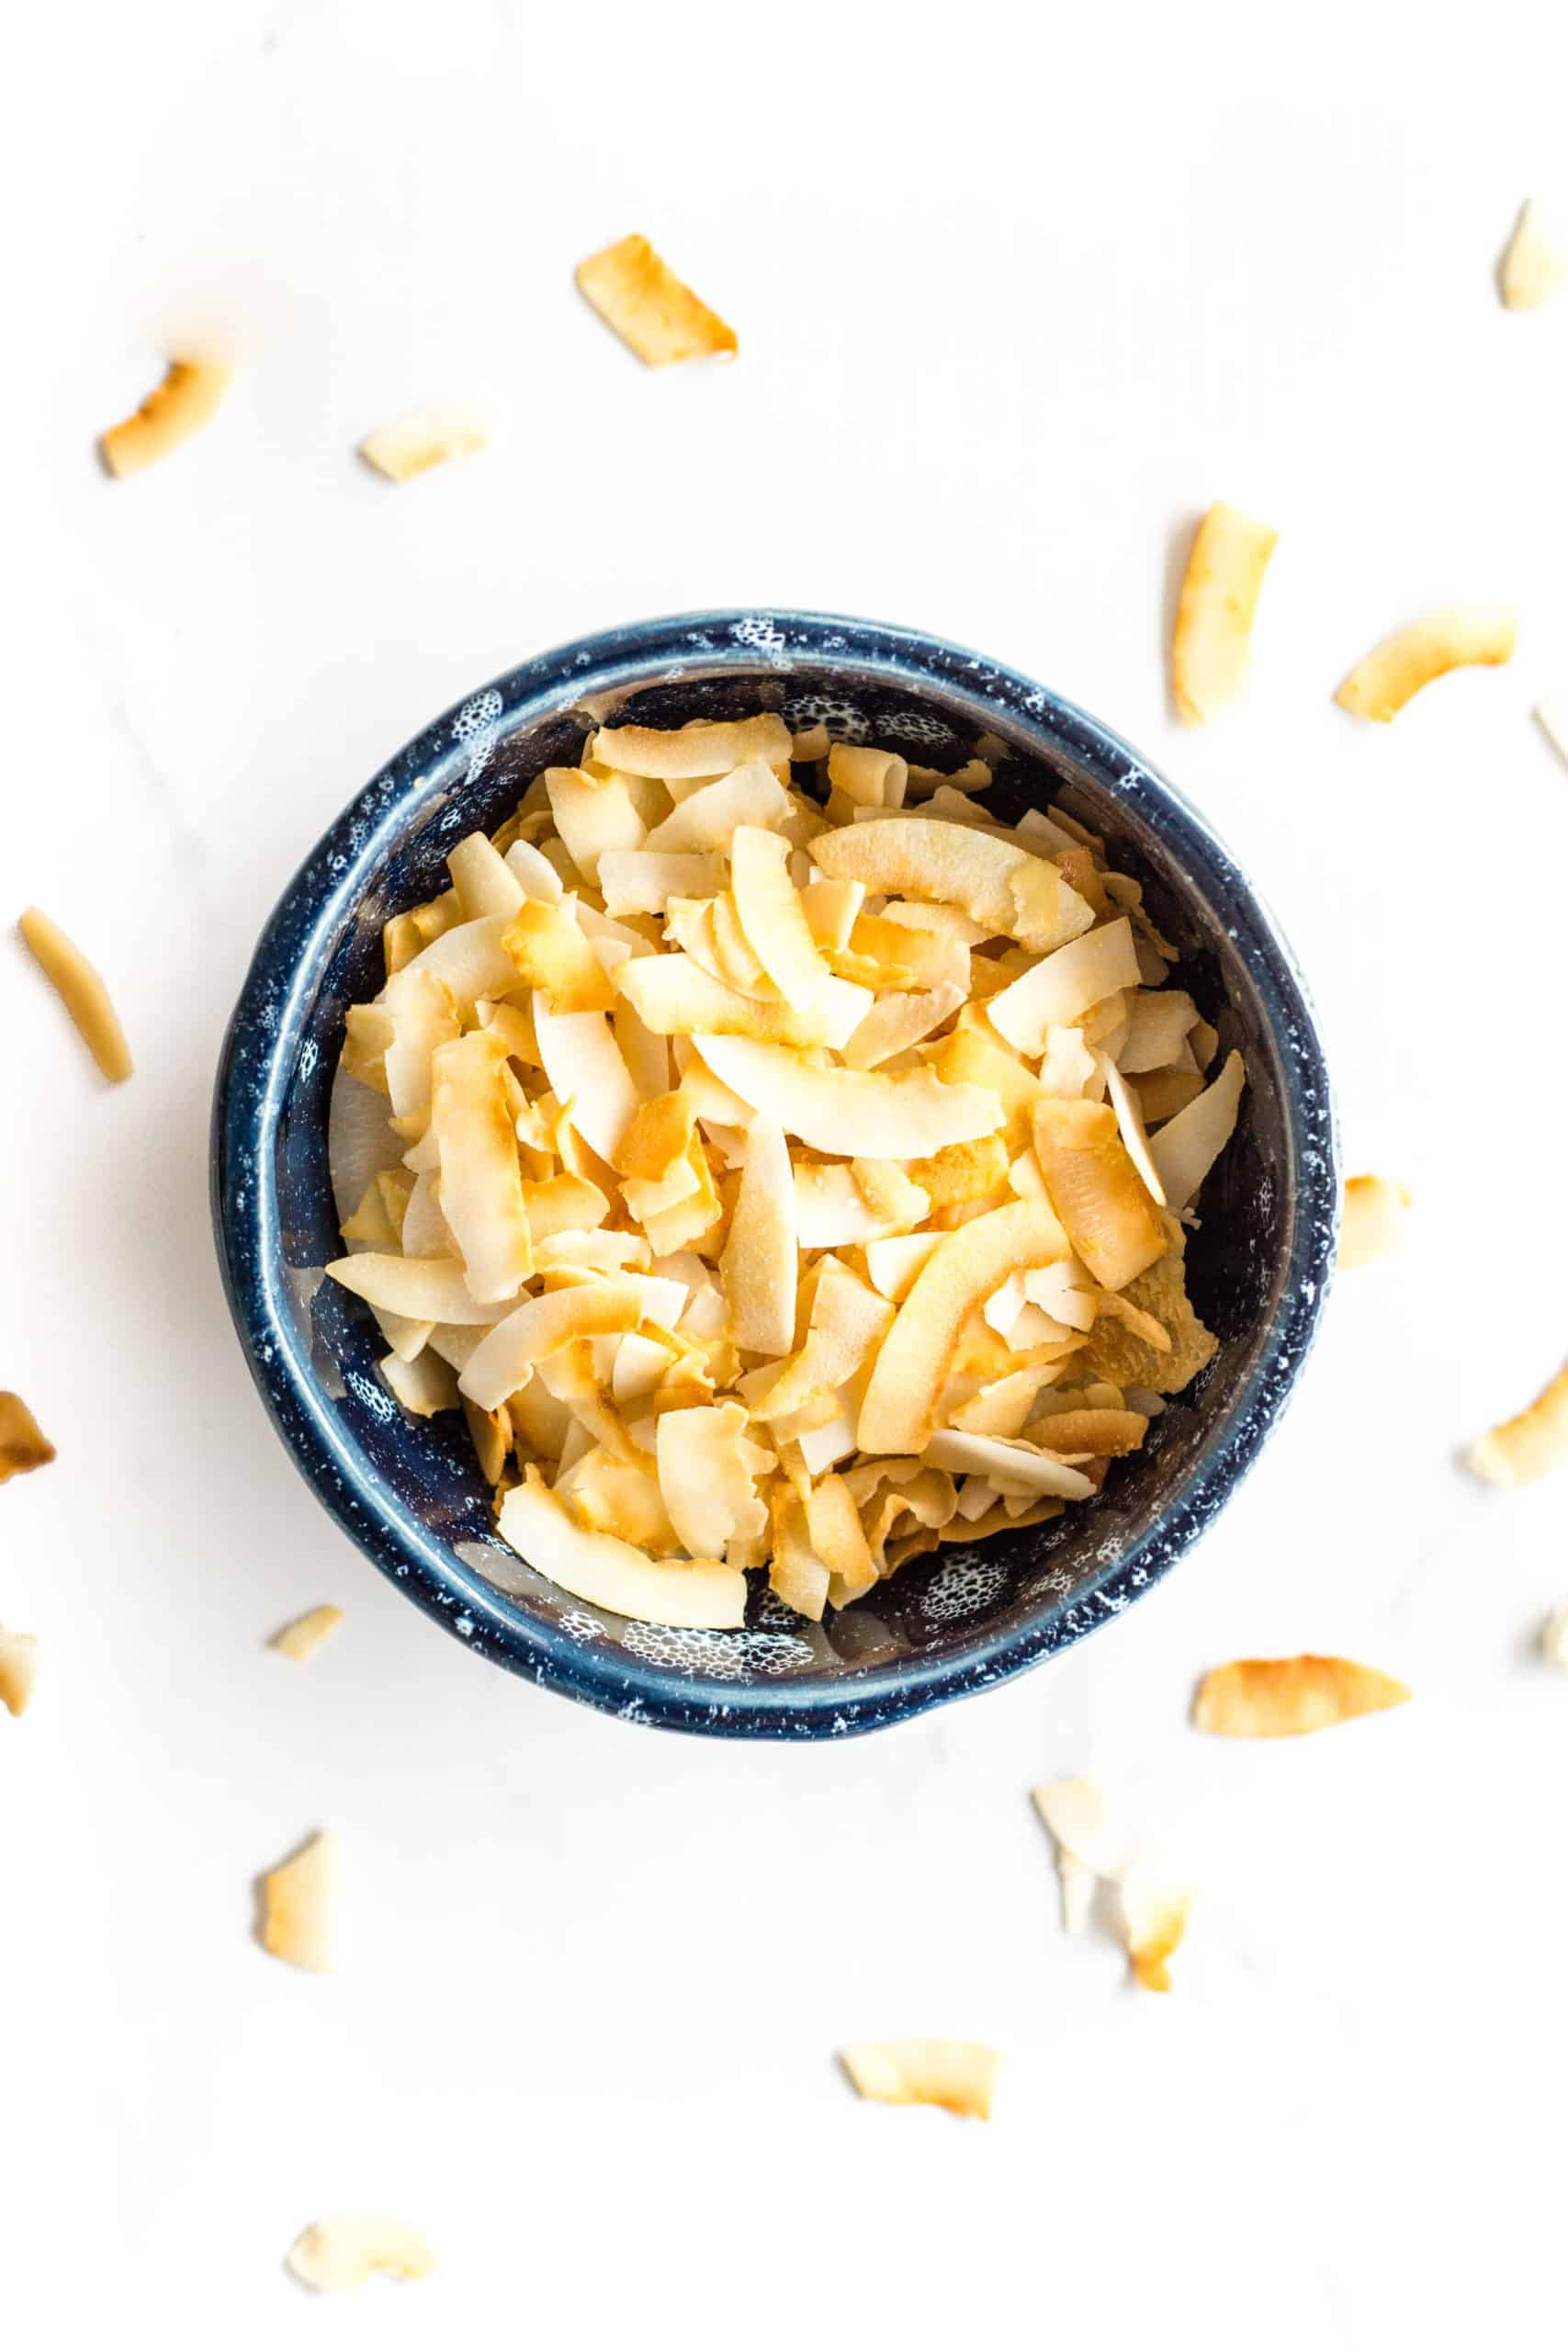 Maple coconut chips in a blue bowl on a marble board